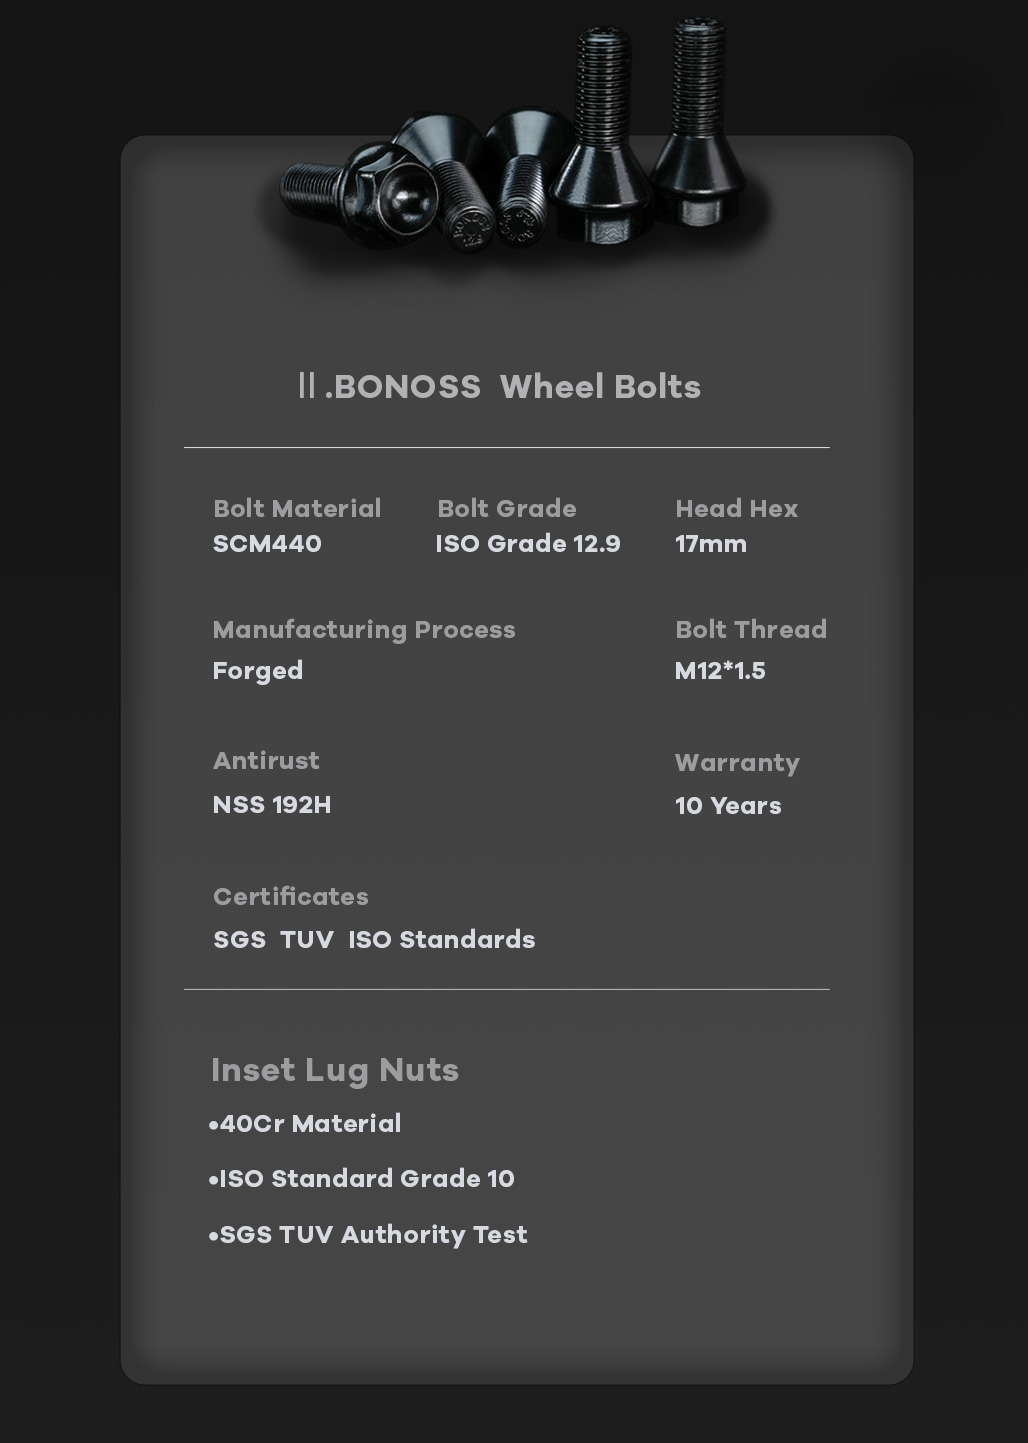 BONOSS-forged-lightweight-plus-wheel-spacer-for-Mercedes-Benz-W168-5x112-66.5-12x1.5-6061t6-by-grace-3.